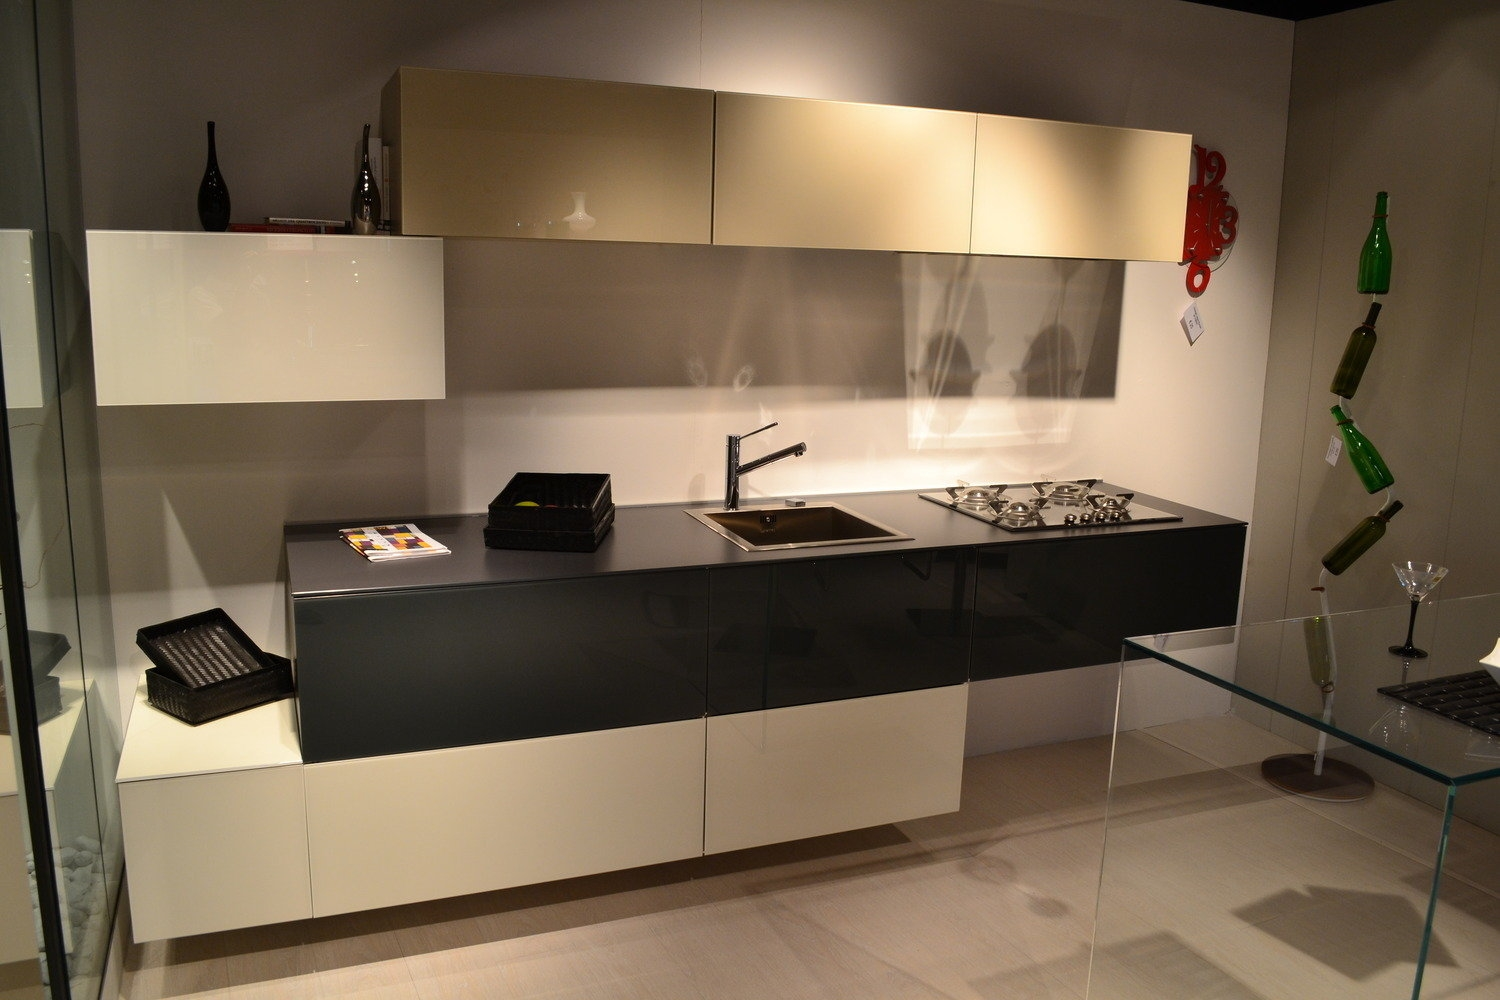 Cucine piccole prezzi awesome an error occurred with for Cucine piccole prezzi